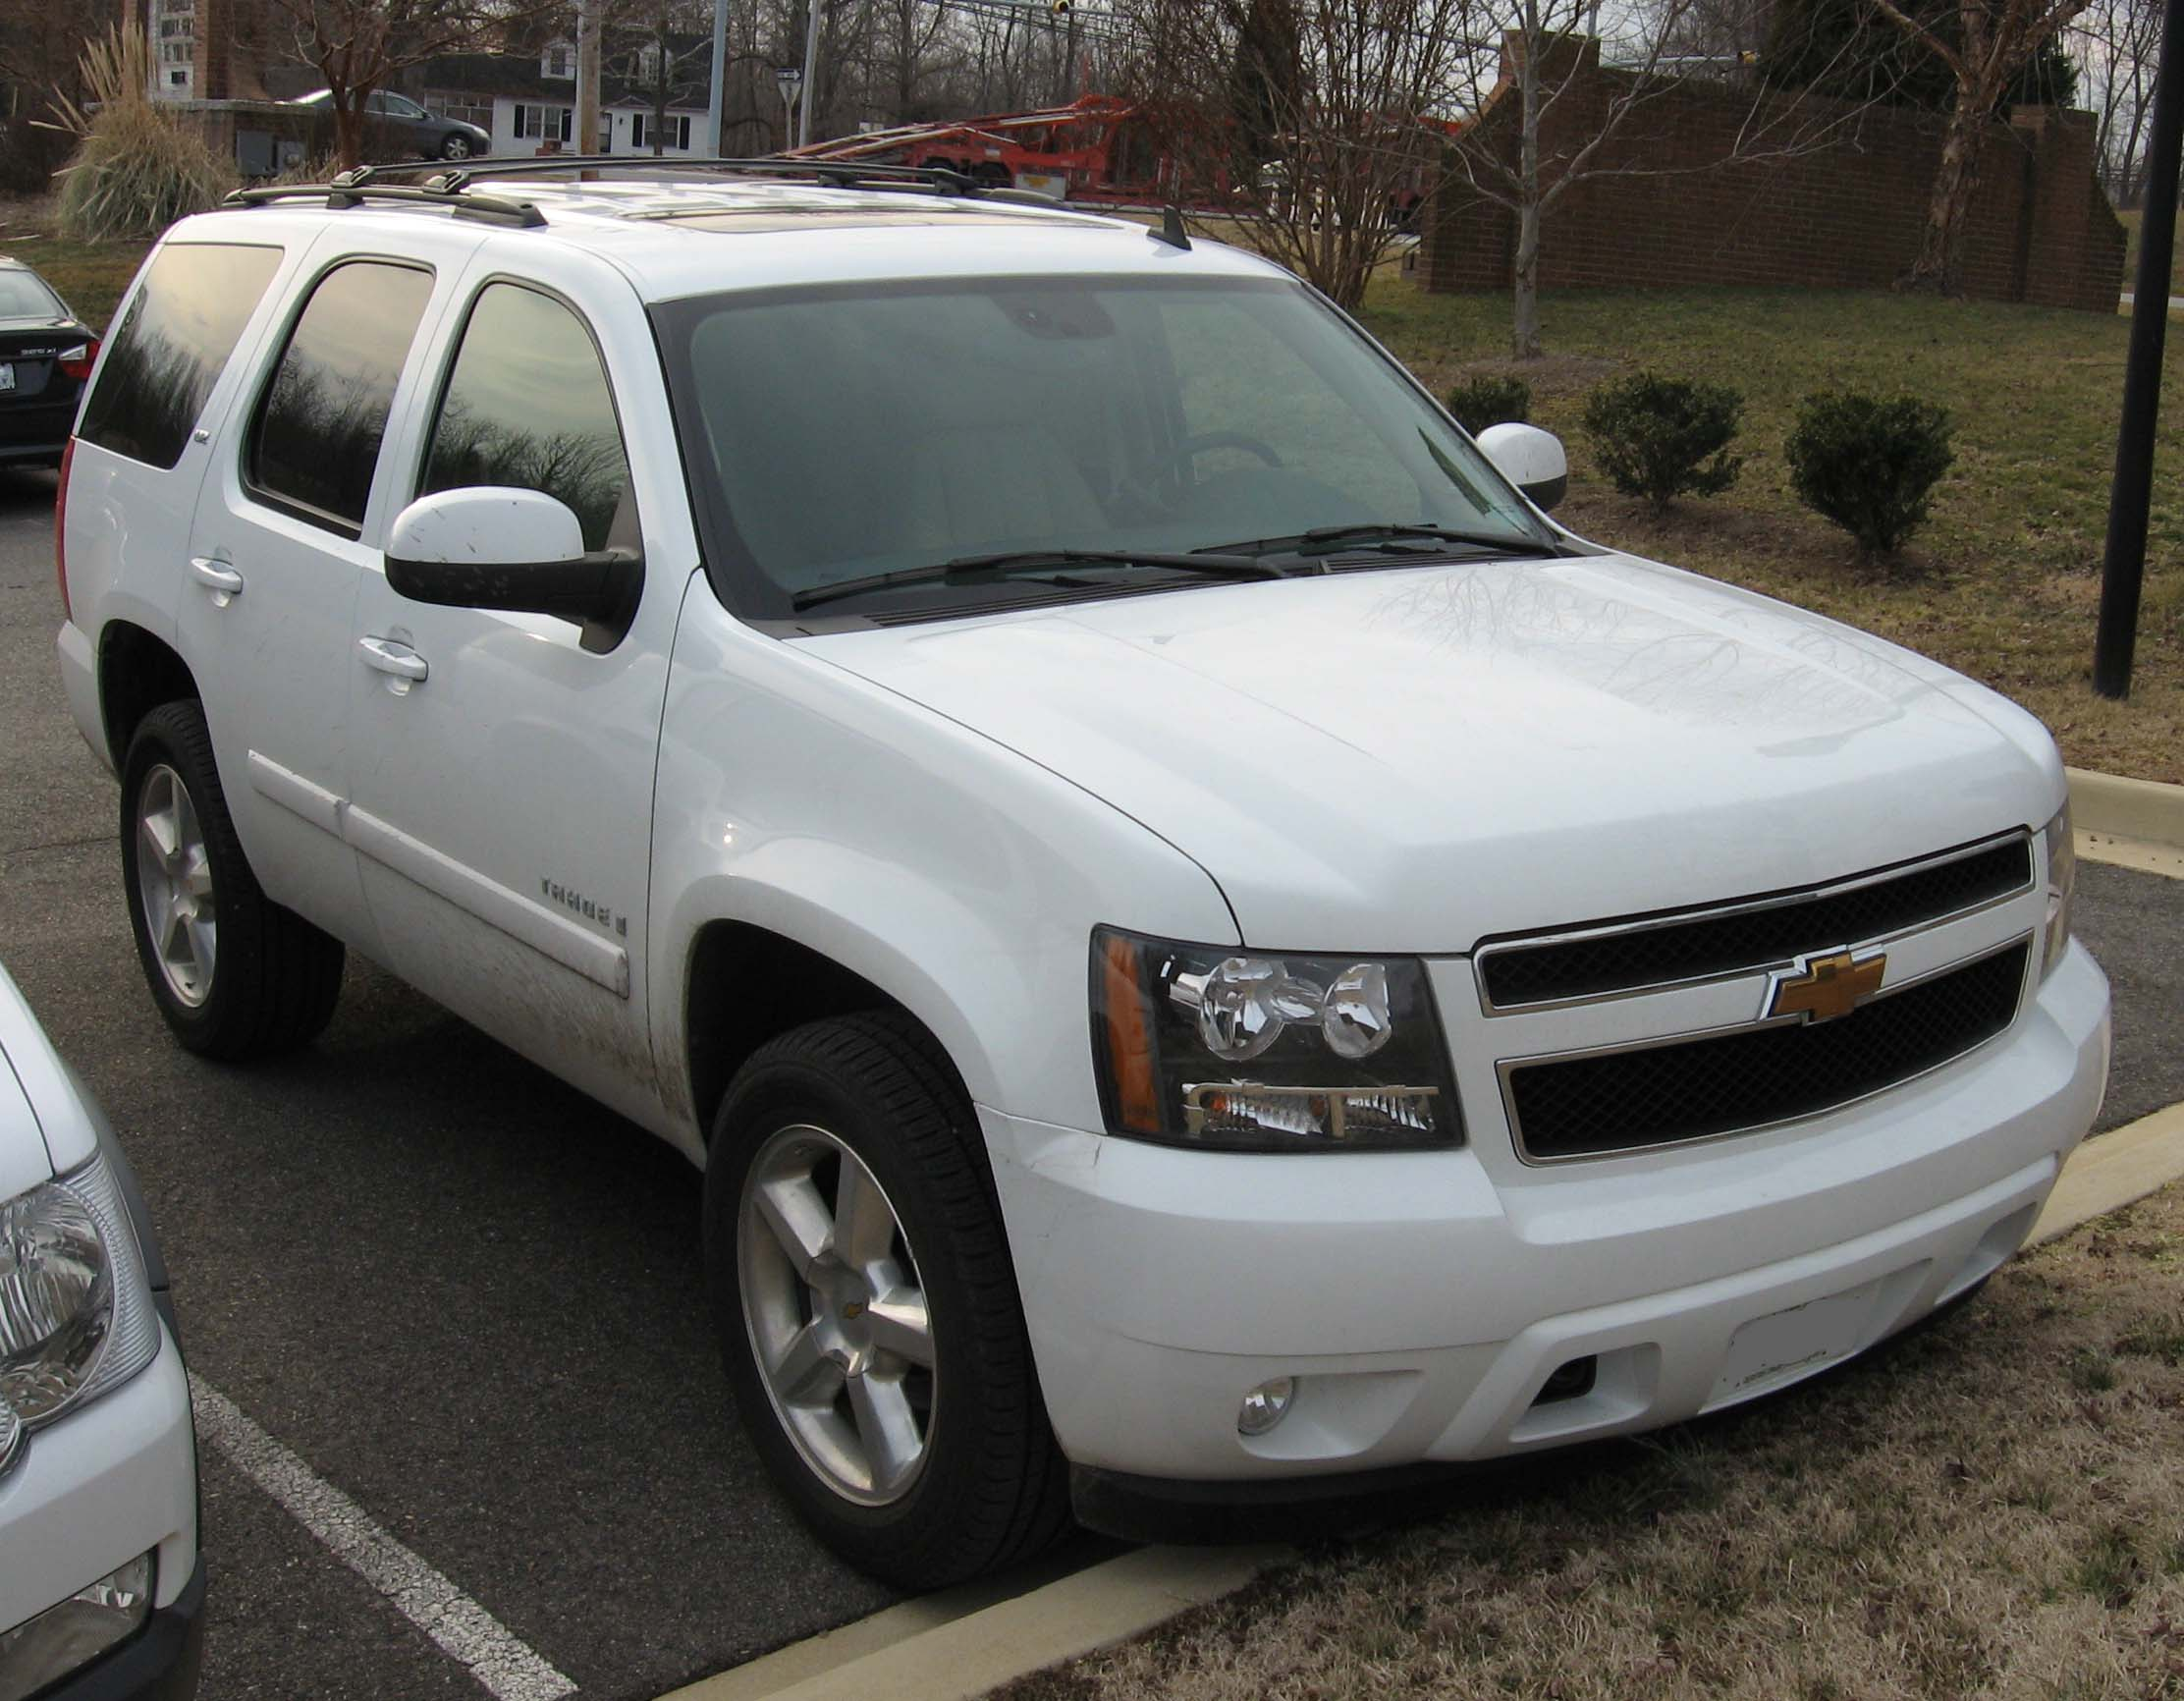 chevrolet tahoe reviews chevrolet tahoe car reviews. Black Bedroom Furniture Sets. Home Design Ideas